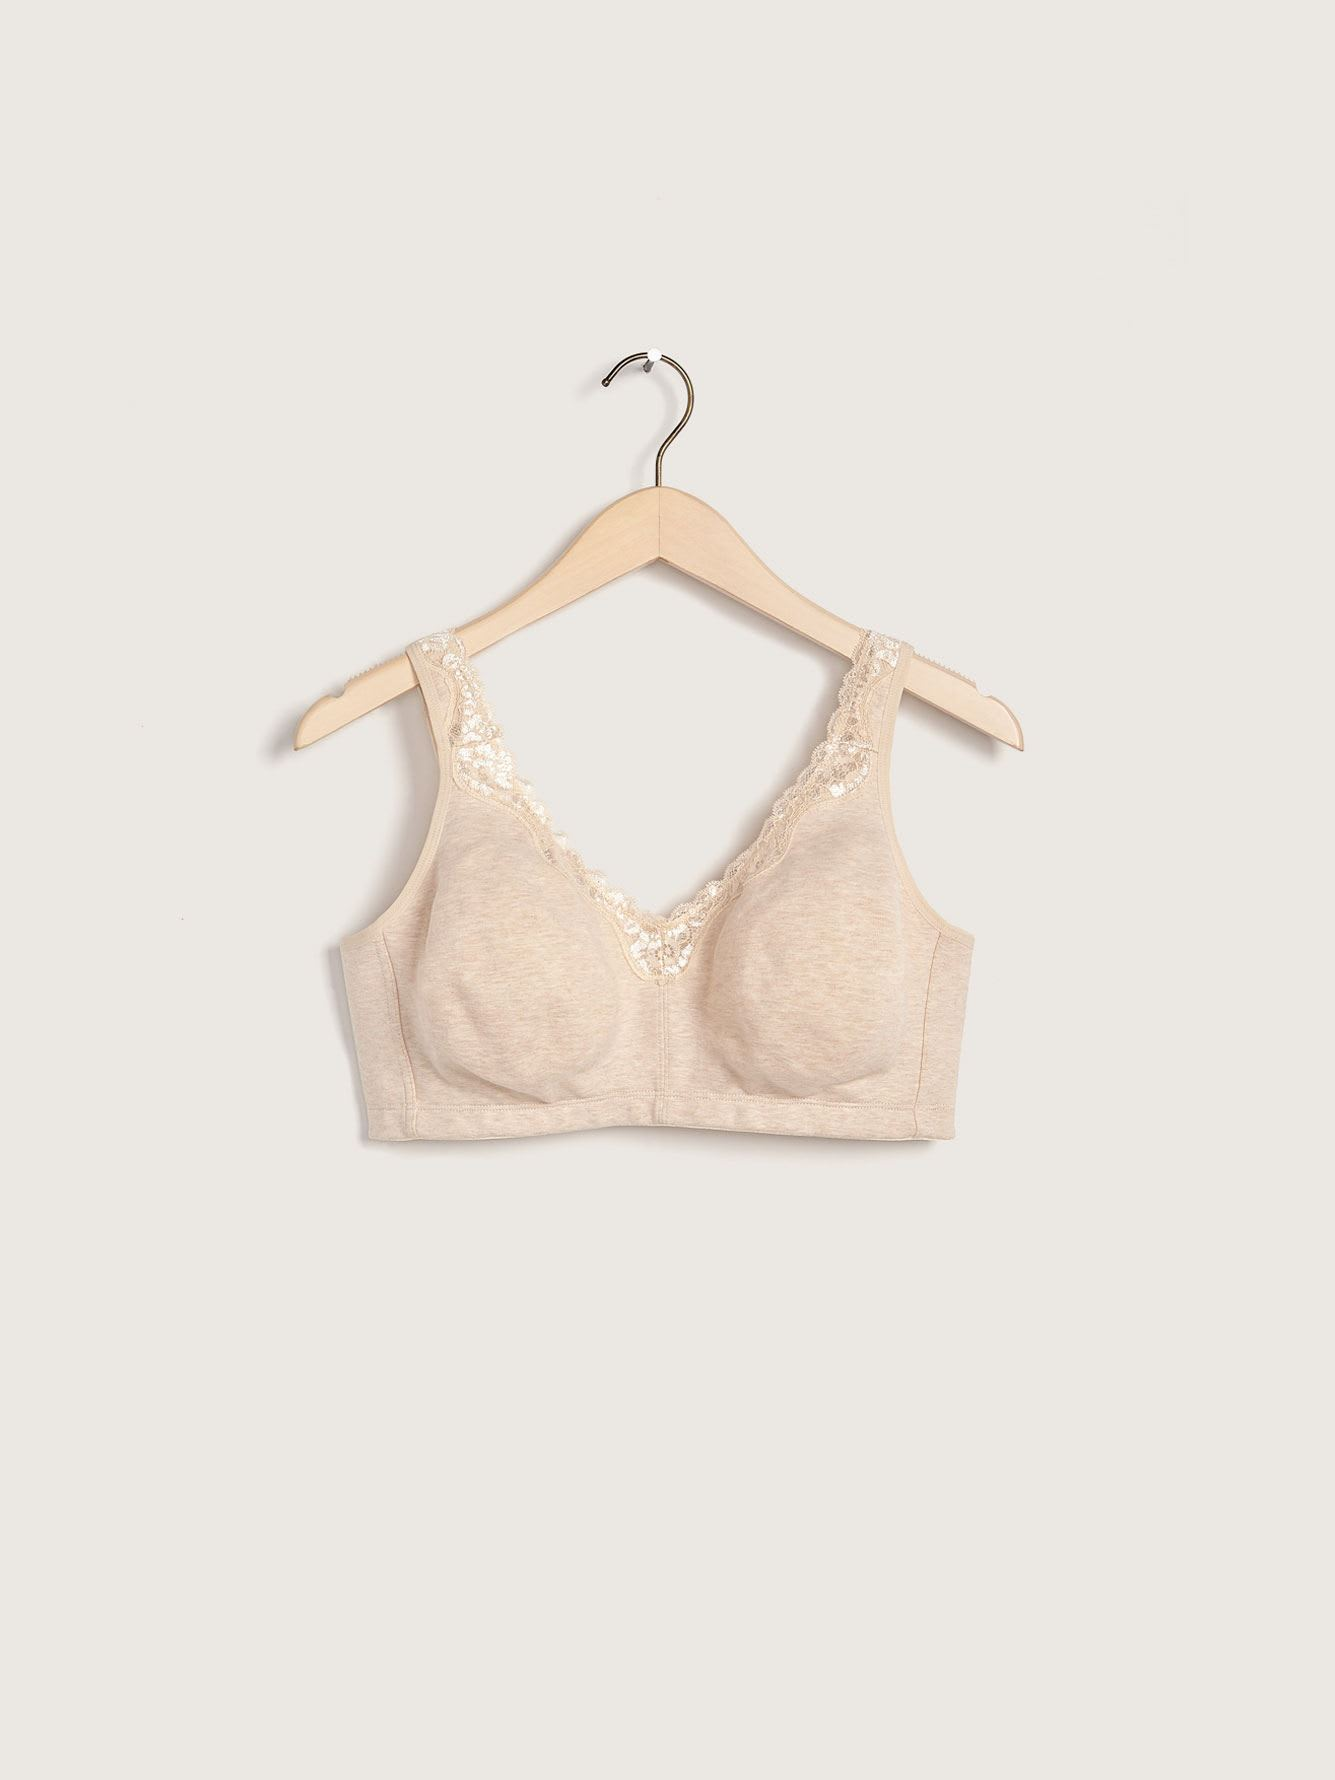 Wireless Heathered Cotton Bra